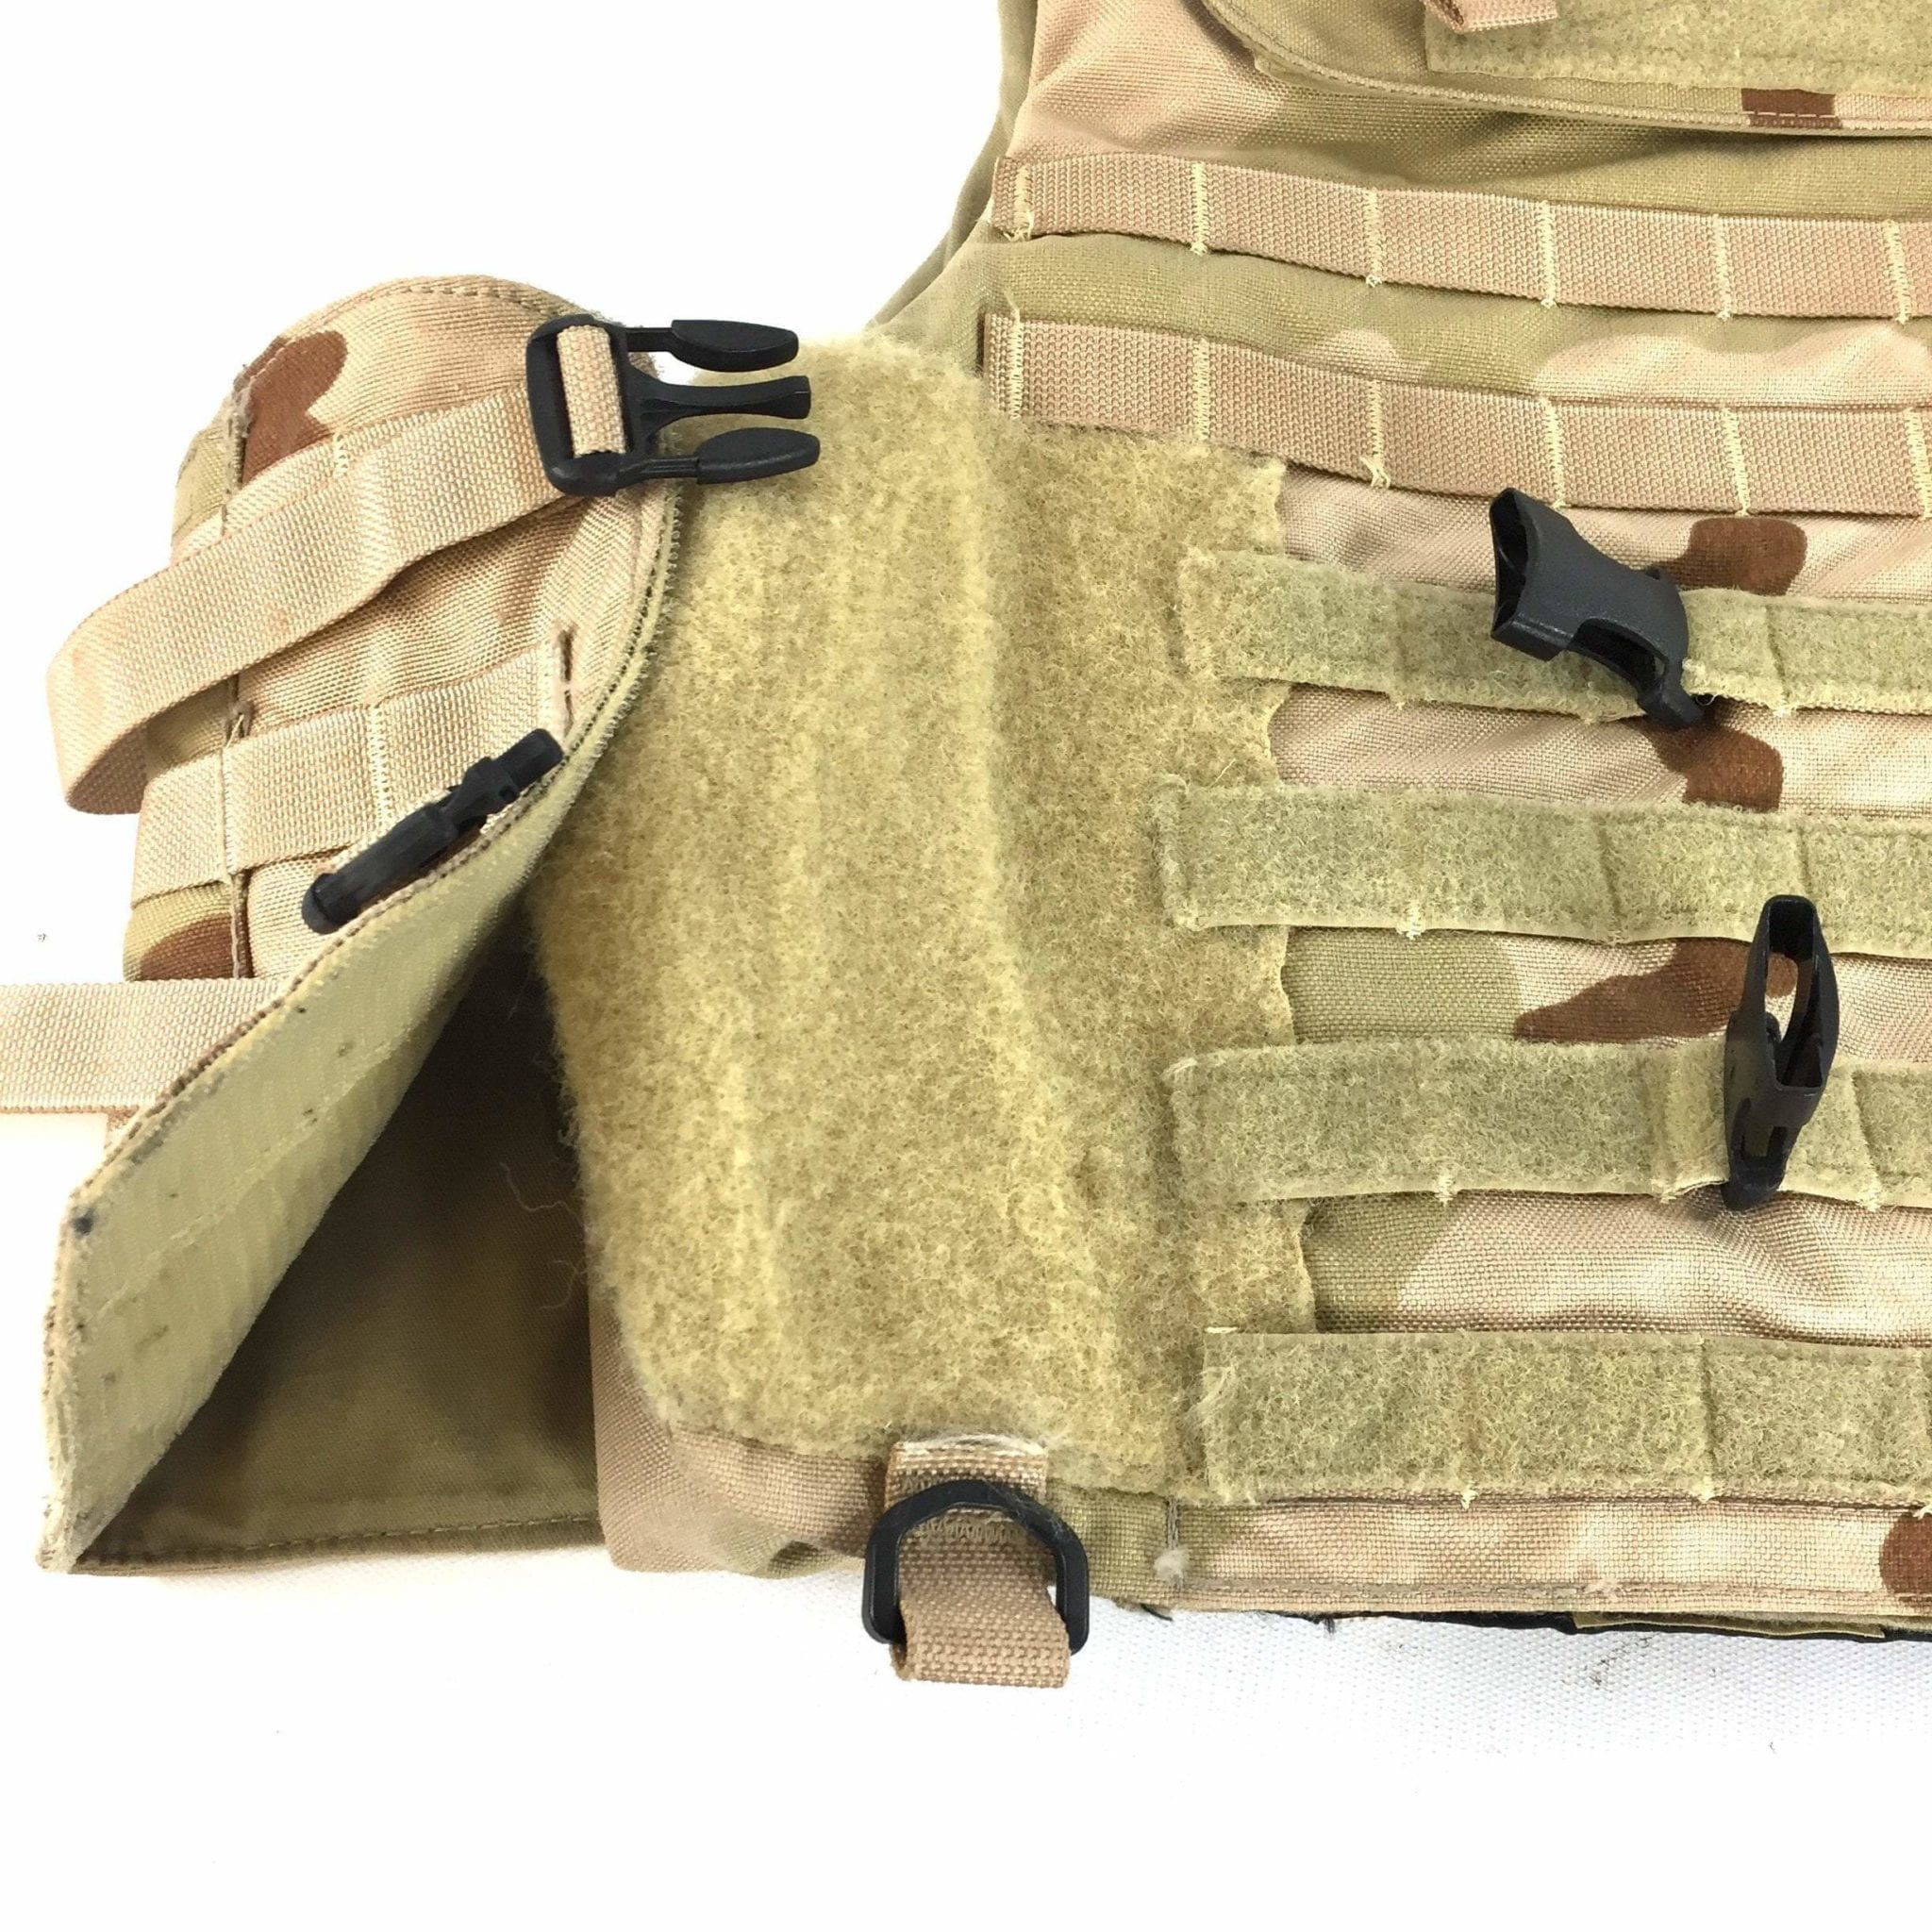 Pre-owned RBR Tactical Armor Inc. Personal Body Armor Vest M-TAC 300